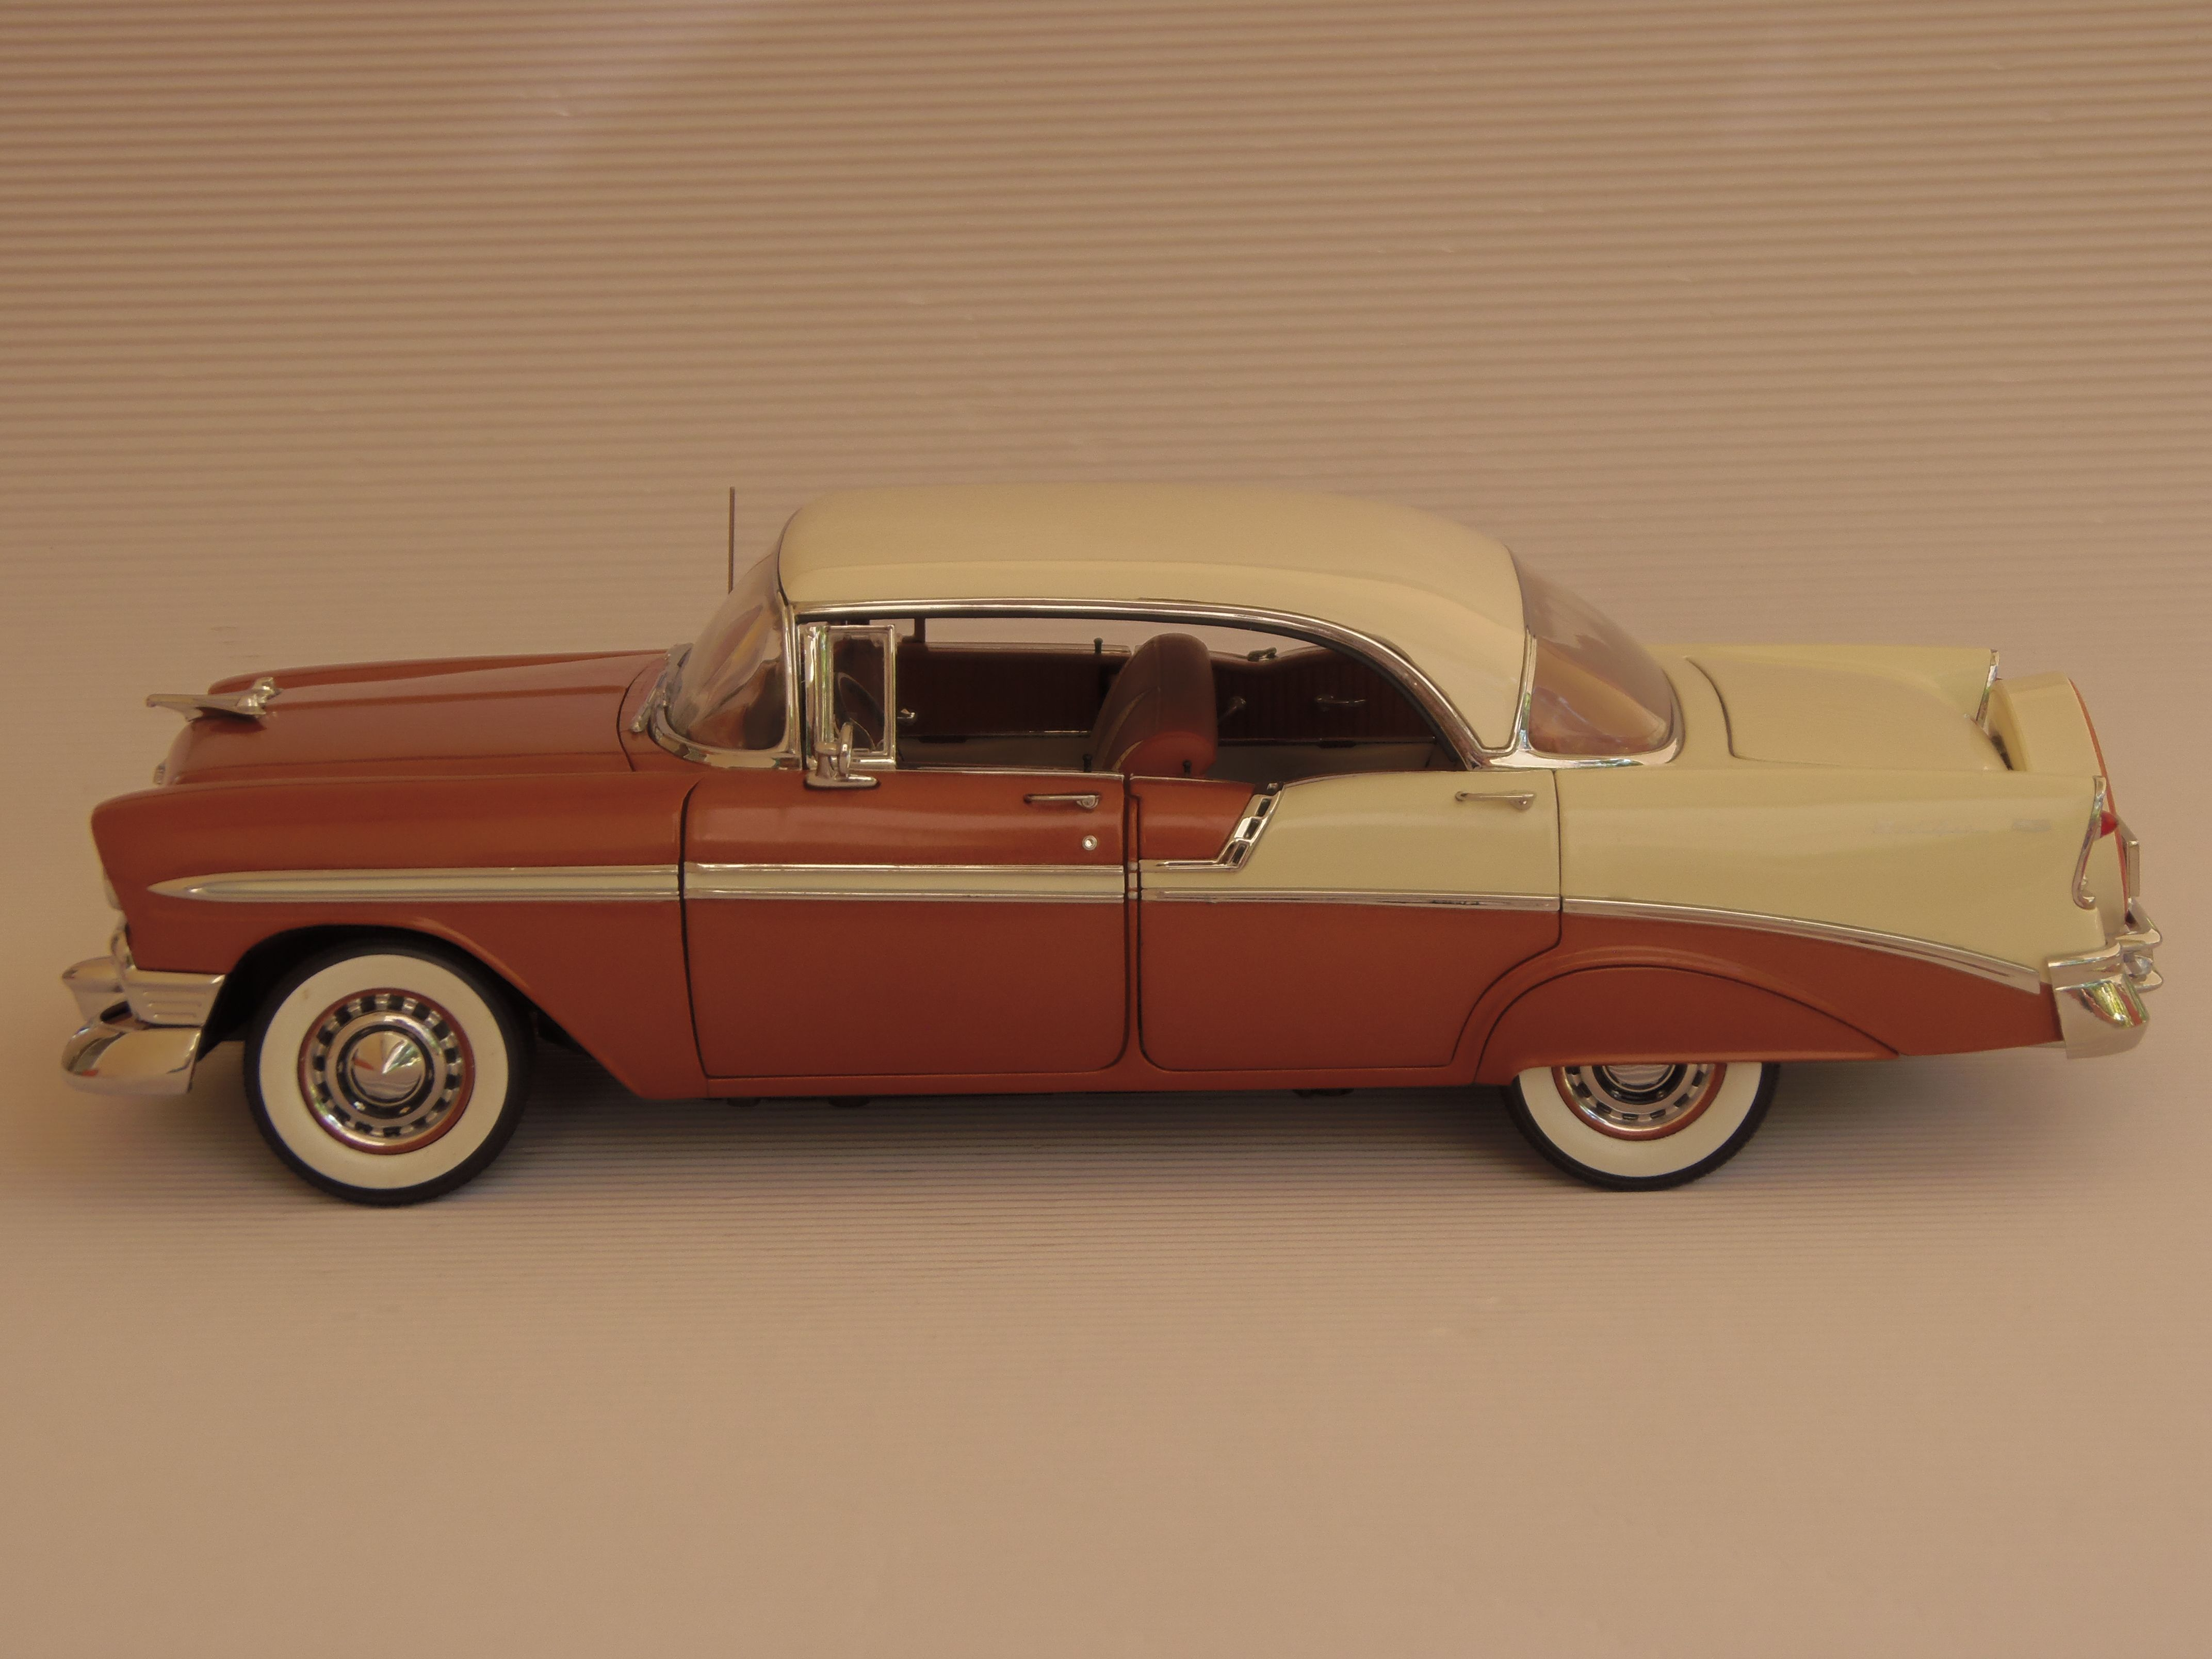 1955 chevy cars ebay motors 1955 wiring diagram and - 1956 Chevrolet Belair 4 Door Hardtop Sedan 4342ccm 8cyl 162 180hp 1955 1957 1 18 Diecast Collection Pinterest Sedans Chevrolet And